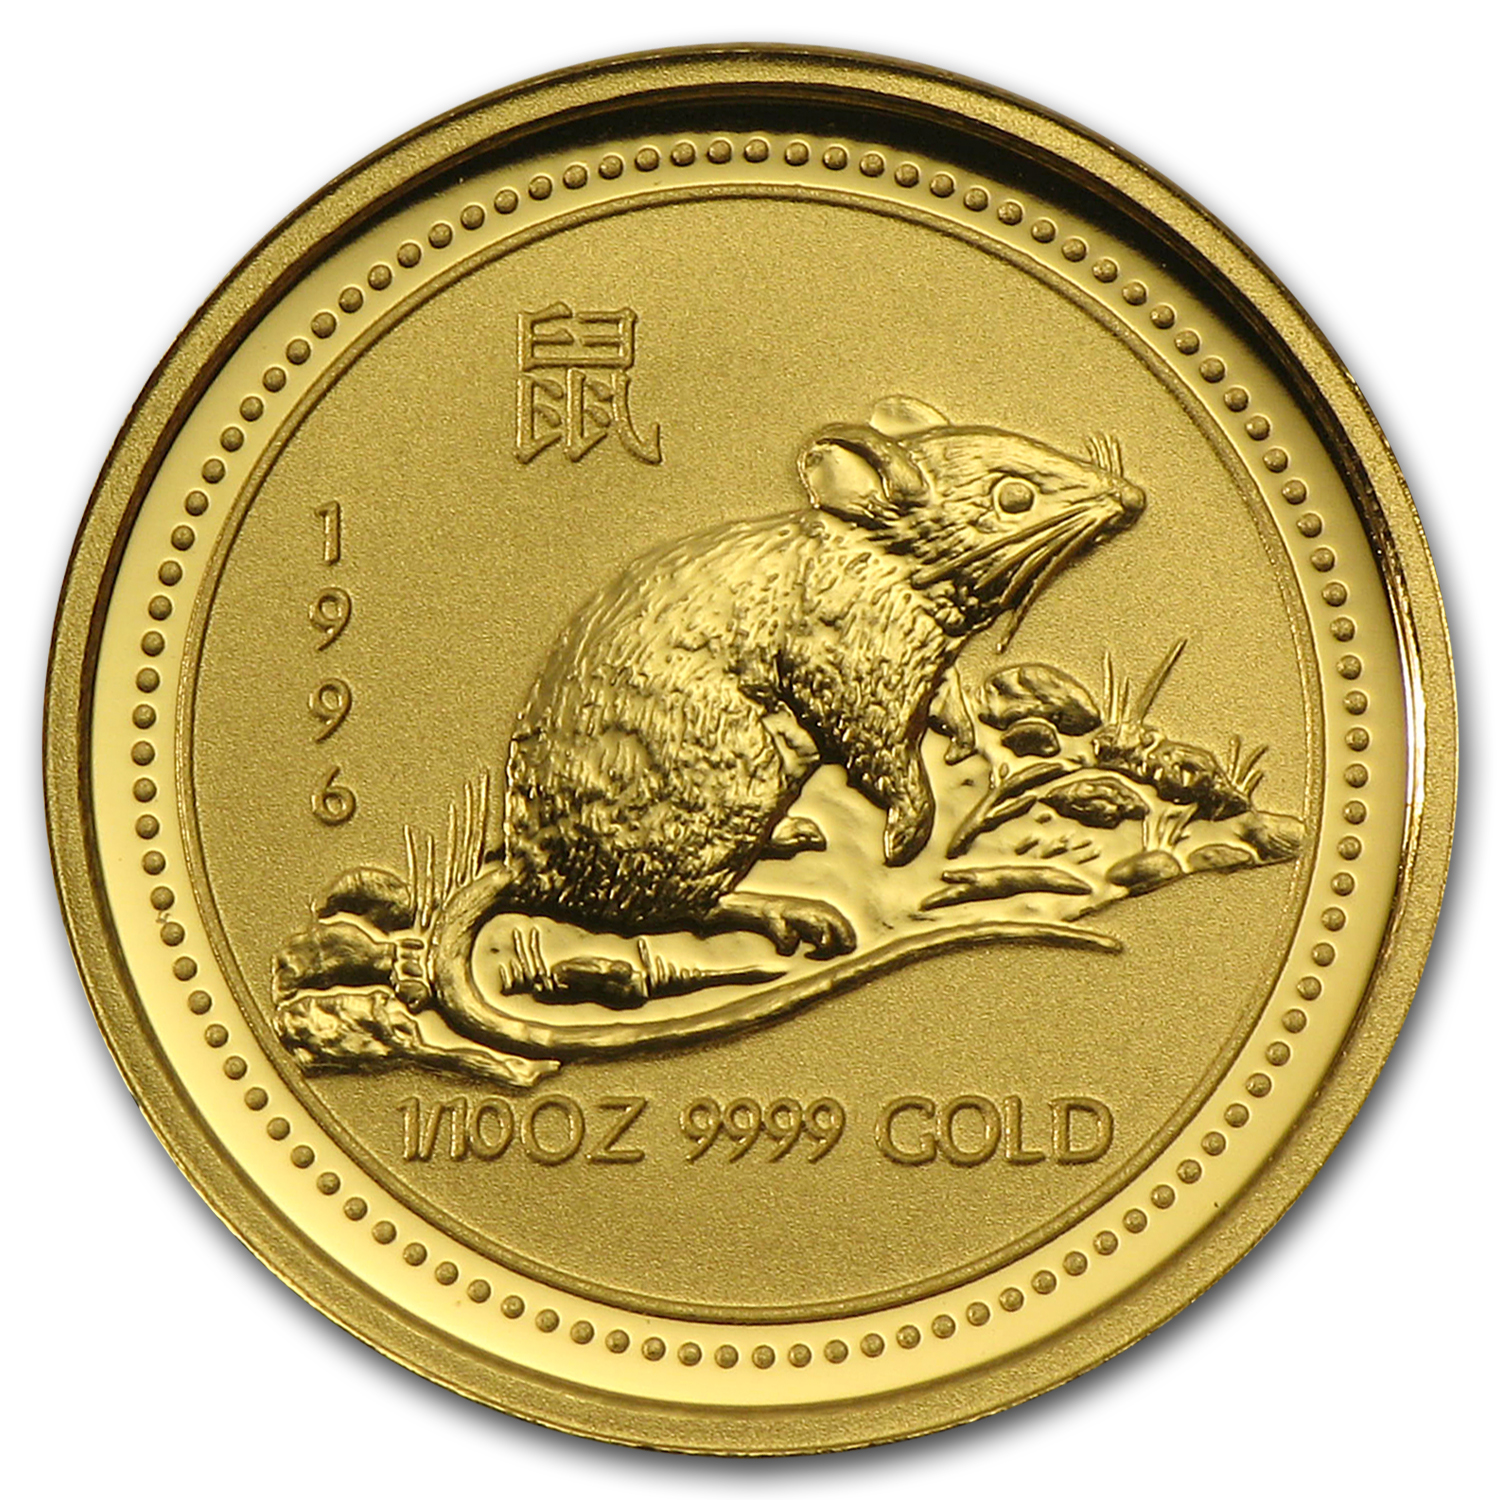 1996 1/10 oz Gold Year of the Rat Lunar Coin (Series I) Key Date!